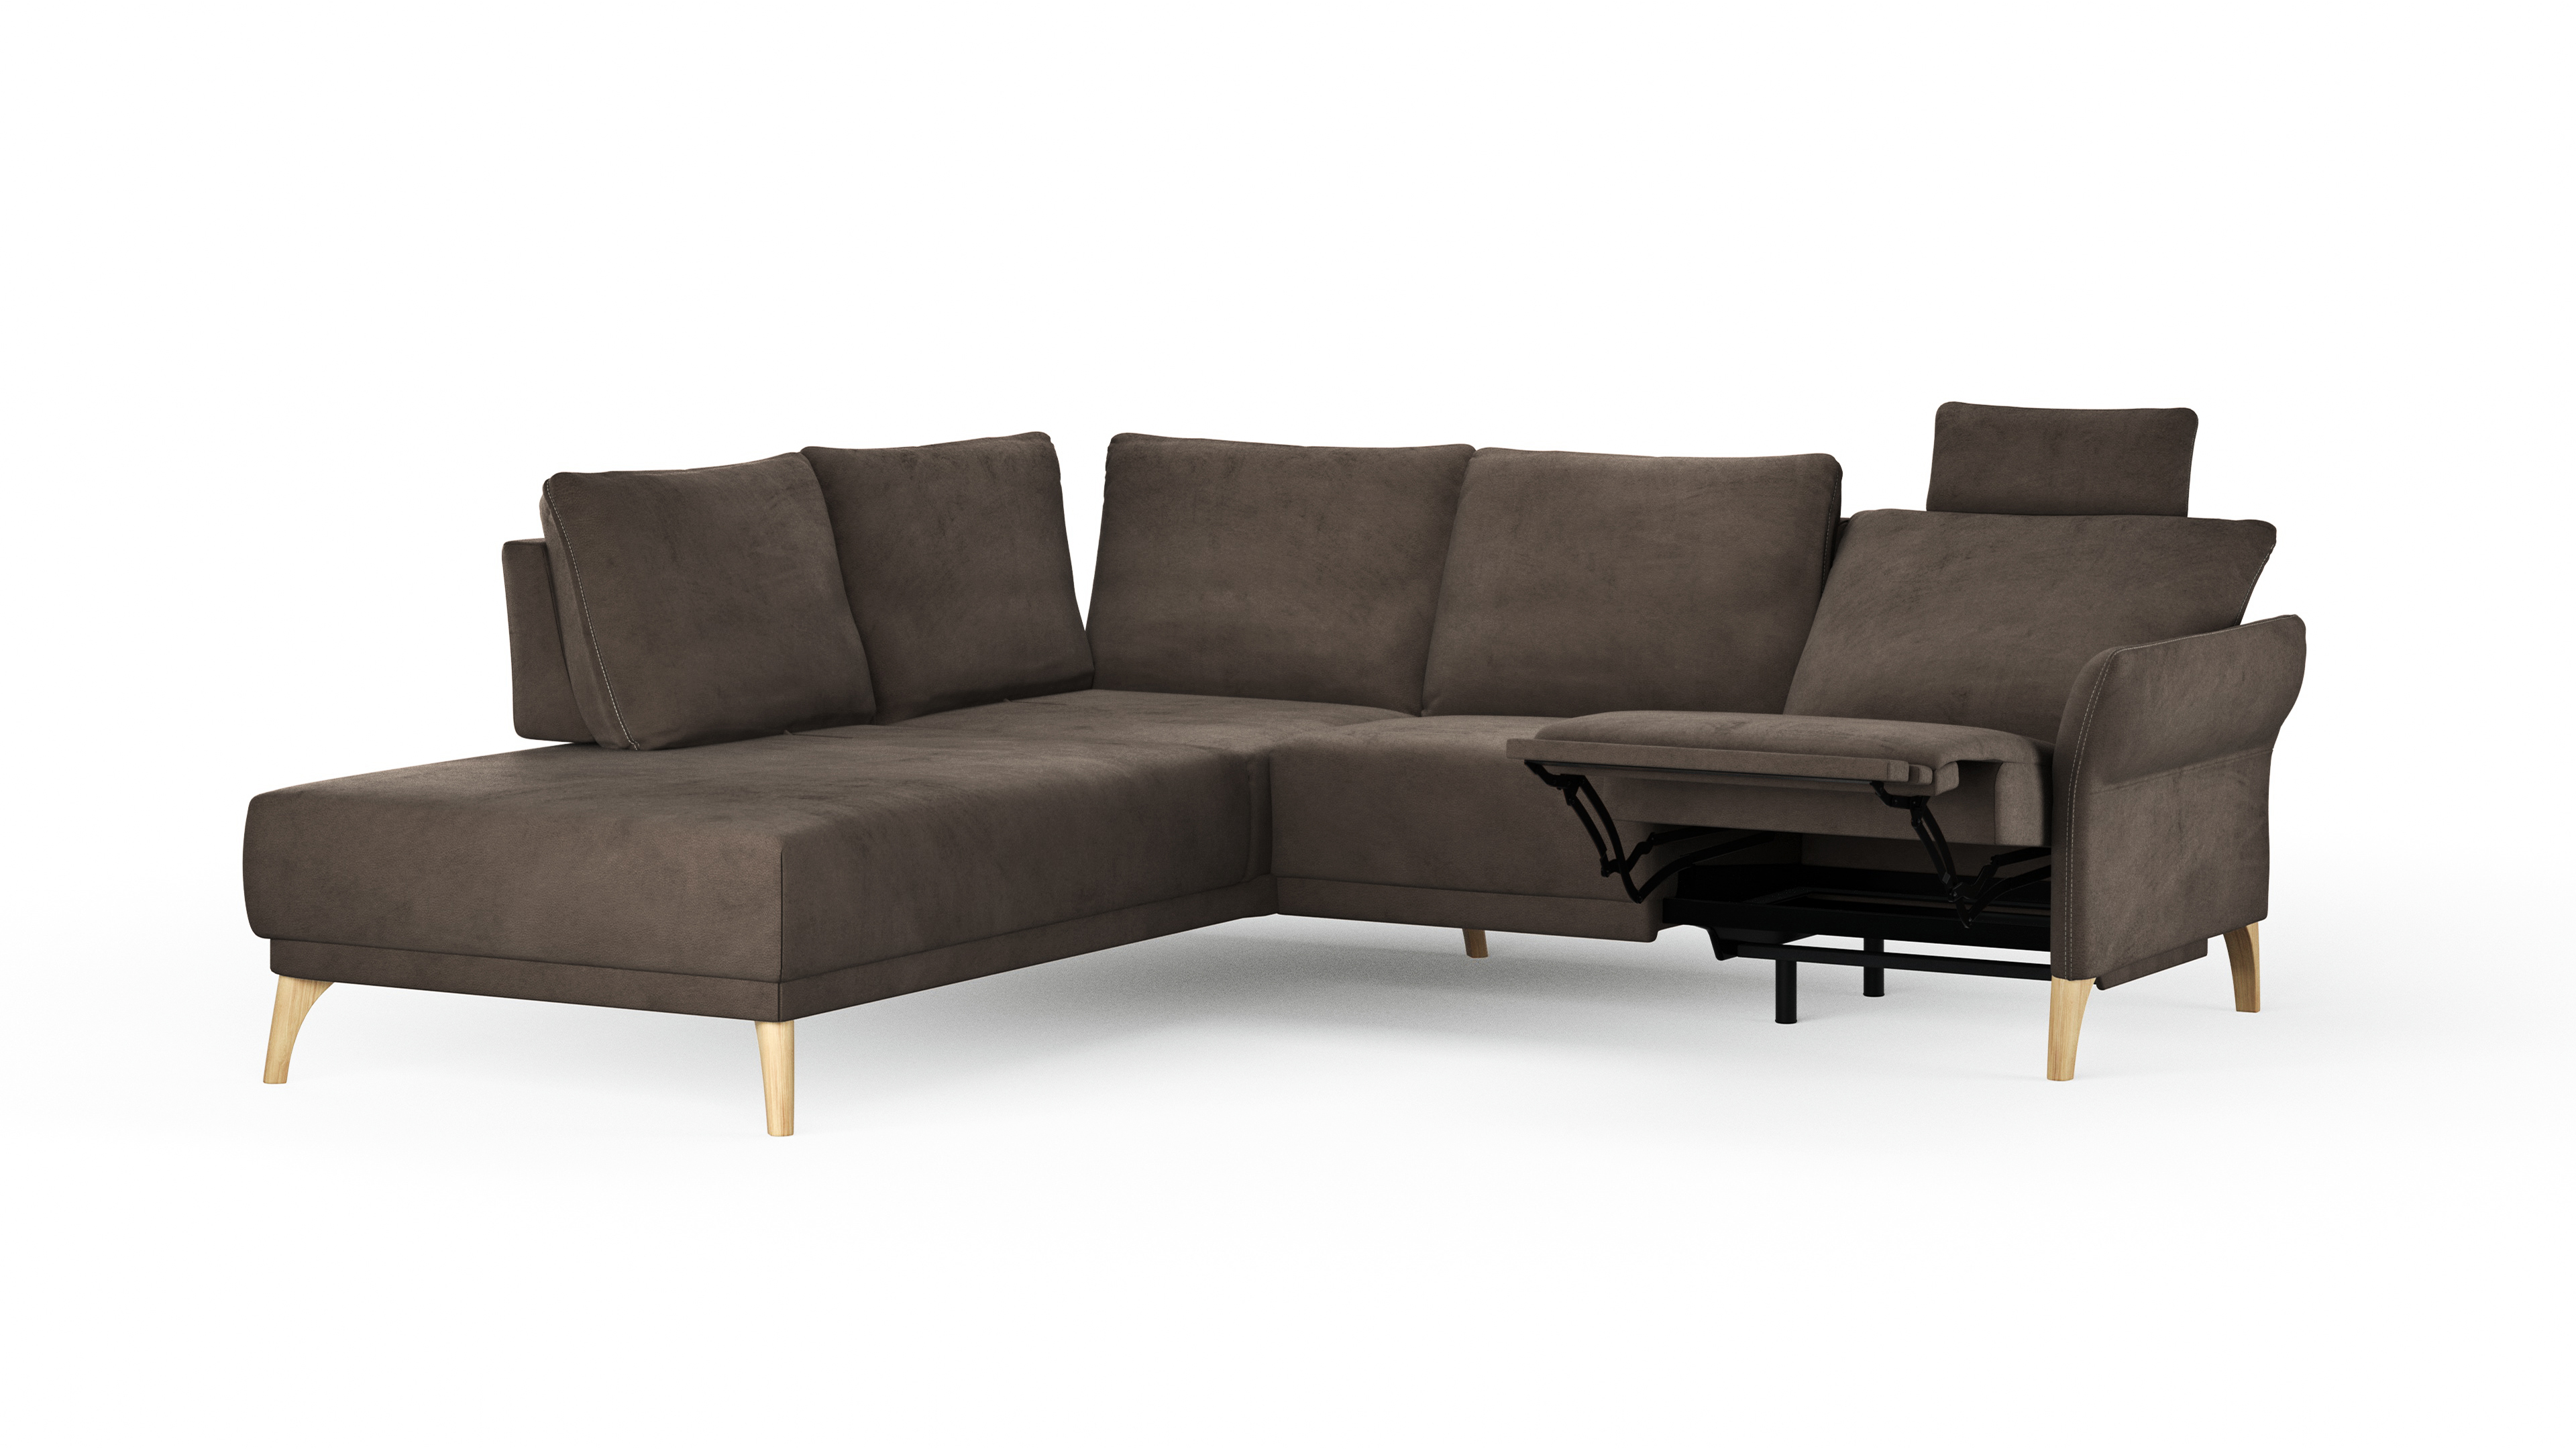 Global Comfort Ecksofa Rosario freisteller 4 102541 | Homepoet